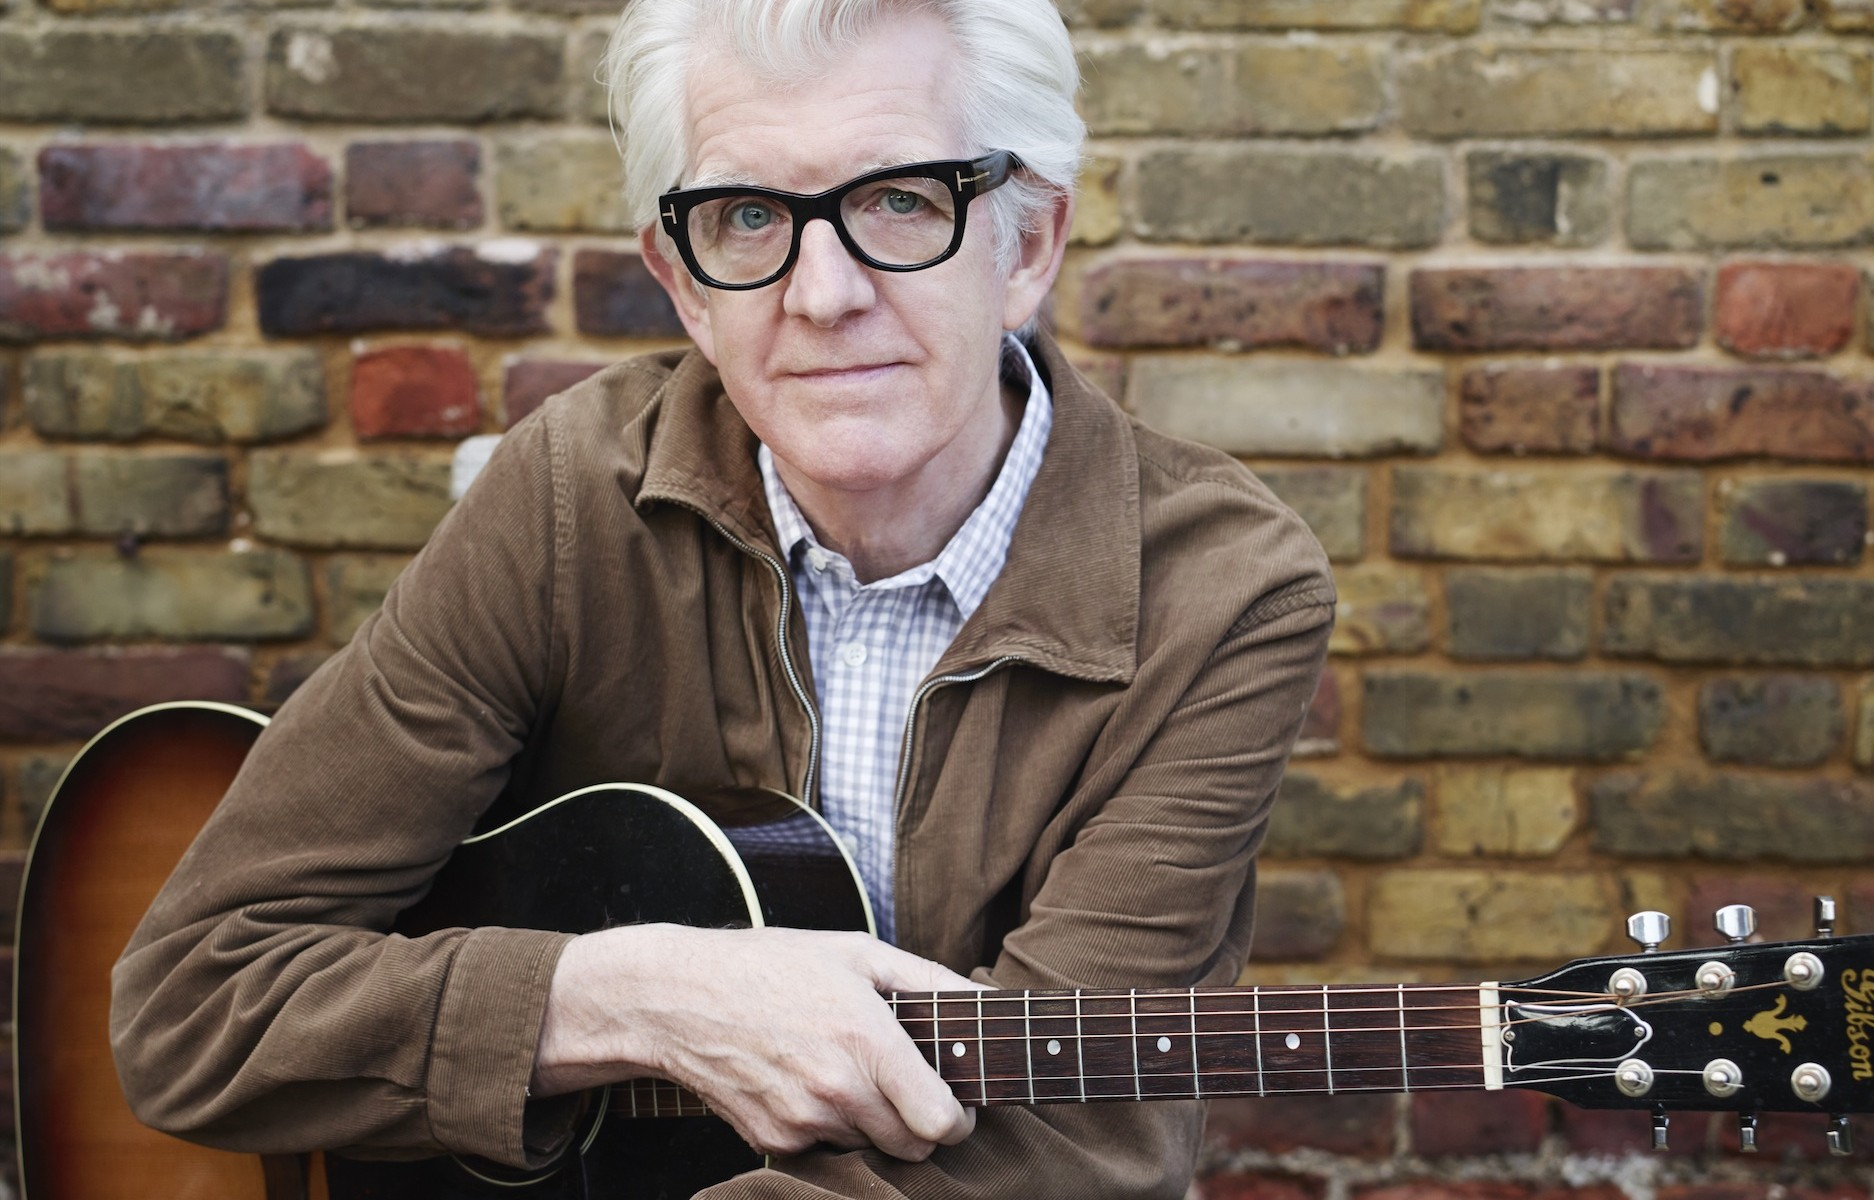 Nick Lowe That Would Be My Idea Of Hell To Let People Relive